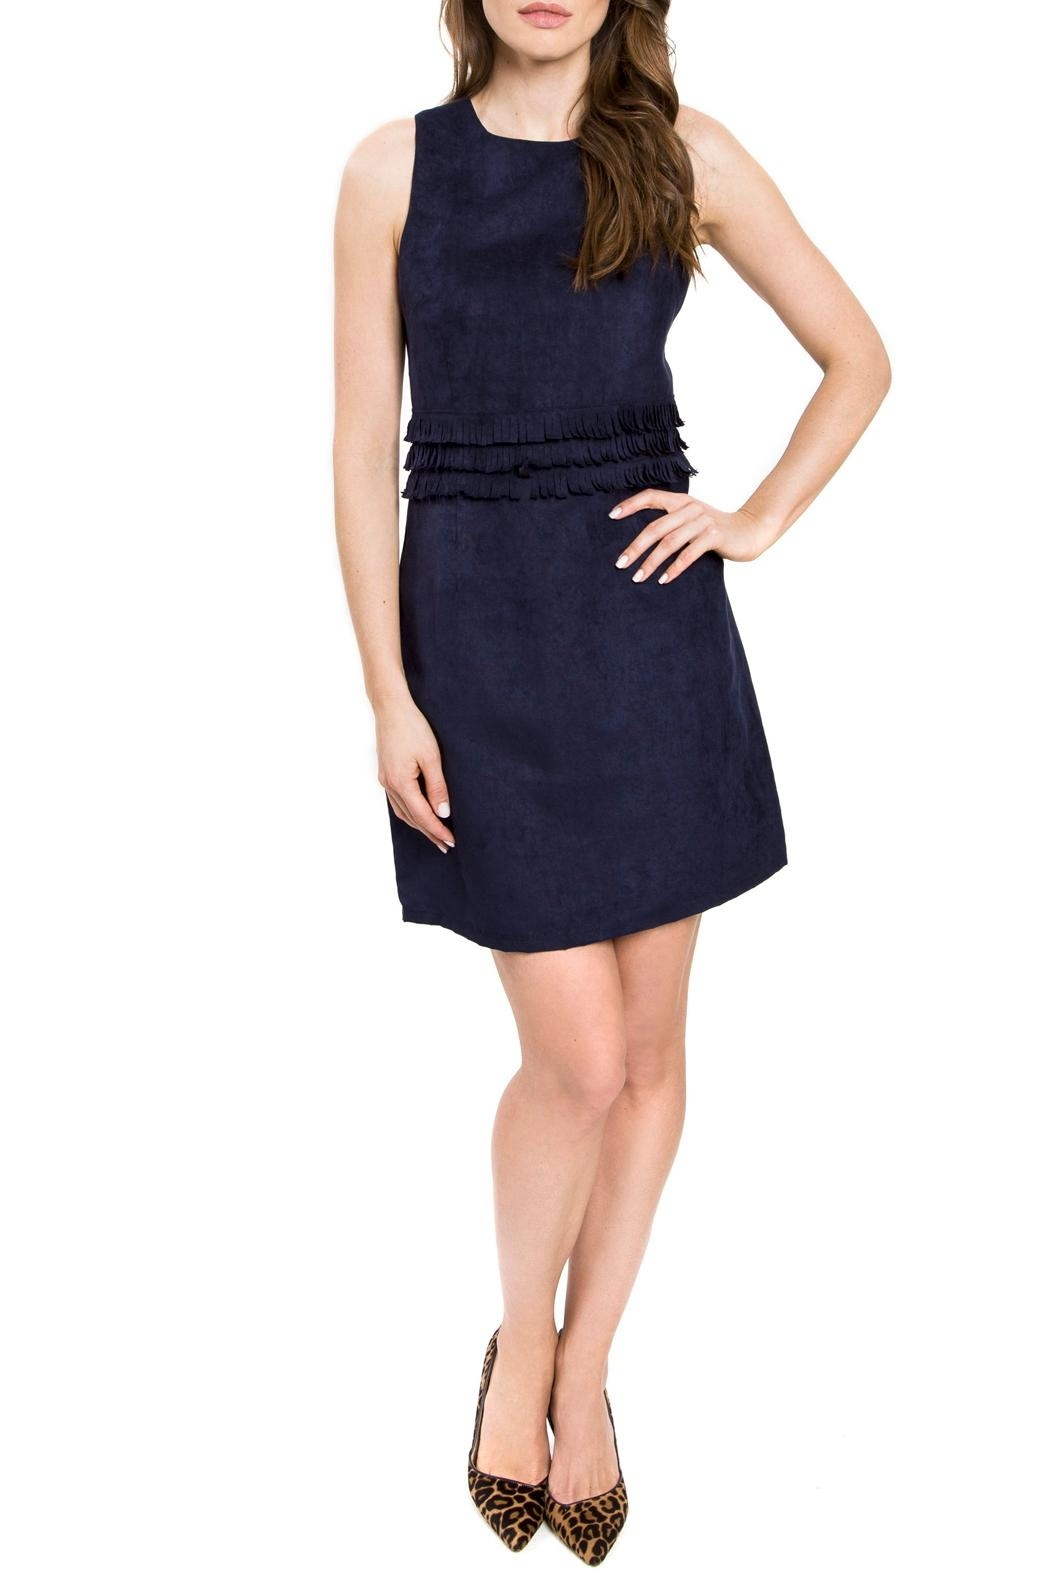 Julie Brown Lori Faux Suede Dress - Front Cropped Image